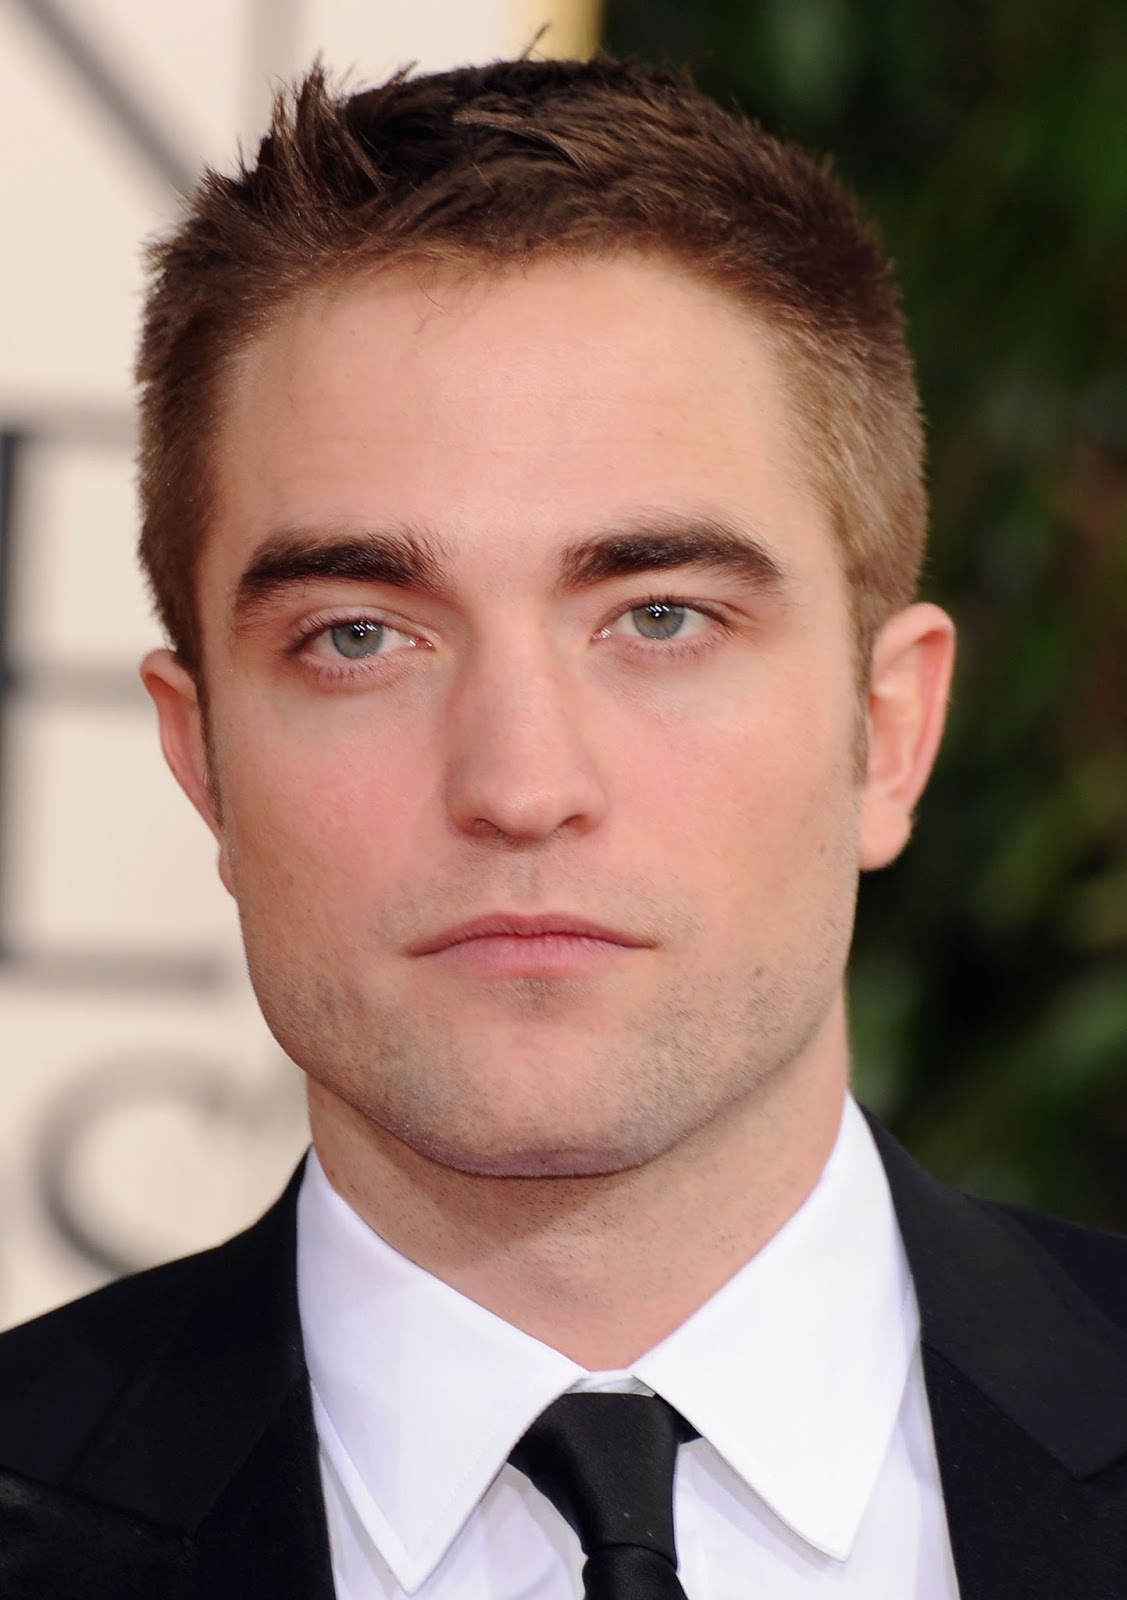 Ebm Resources Grading Evidence In Medicine further Nivea moreover Robert Pattinson Most Famous Star in addition April Showers Bring May Flowersand The End Of An Era as well Justin Hartley Health Fitness Height Weight Chest Bicep And Waist Size. on acting categories